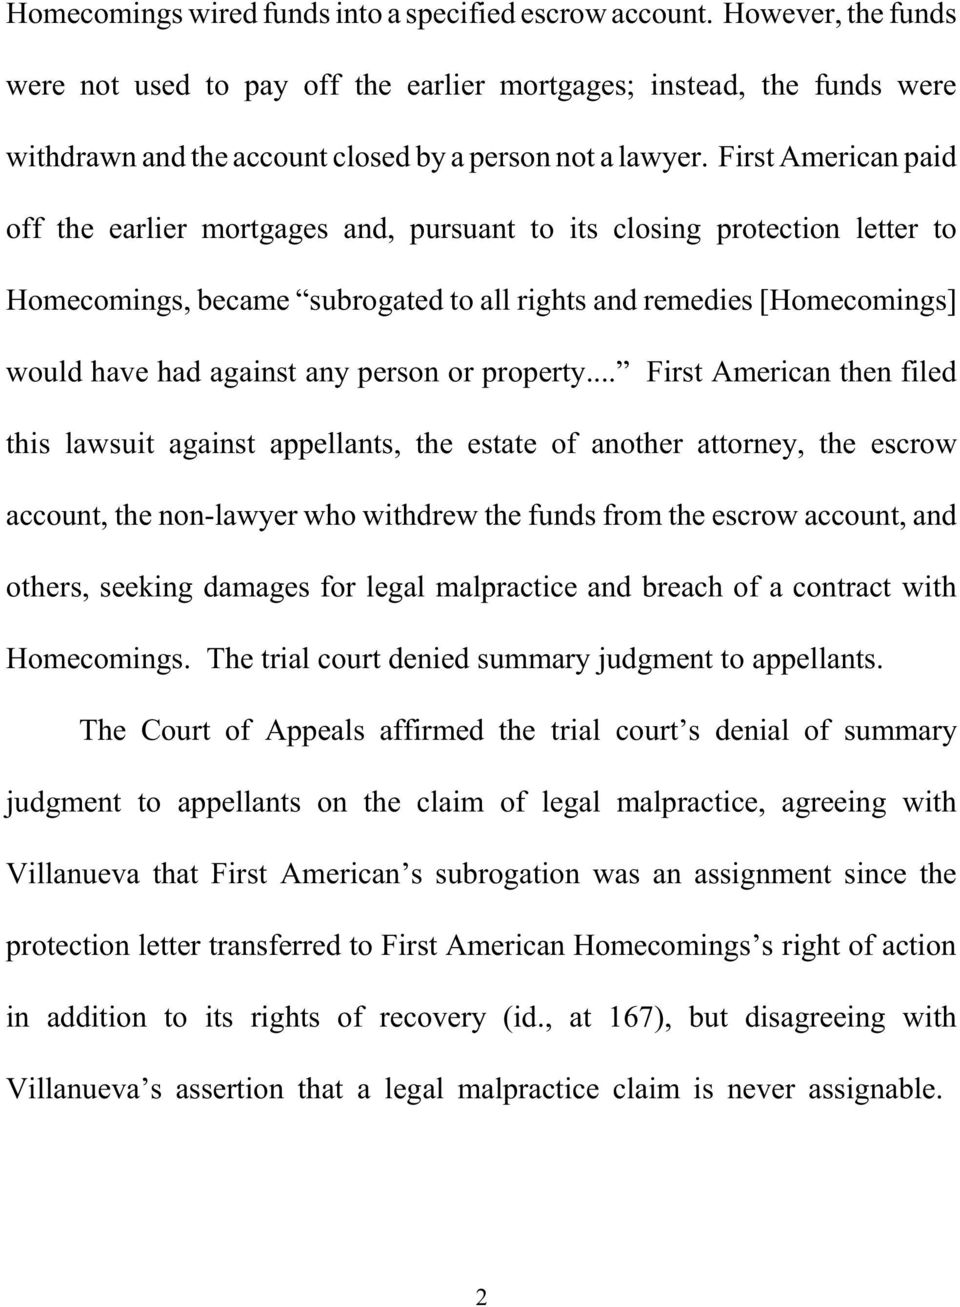 First American paid off the earlier mortgages and, pursuant to its closing protection letter to Homecomings, became subrogated to all rights and remedies [Homecomings] would have had against any